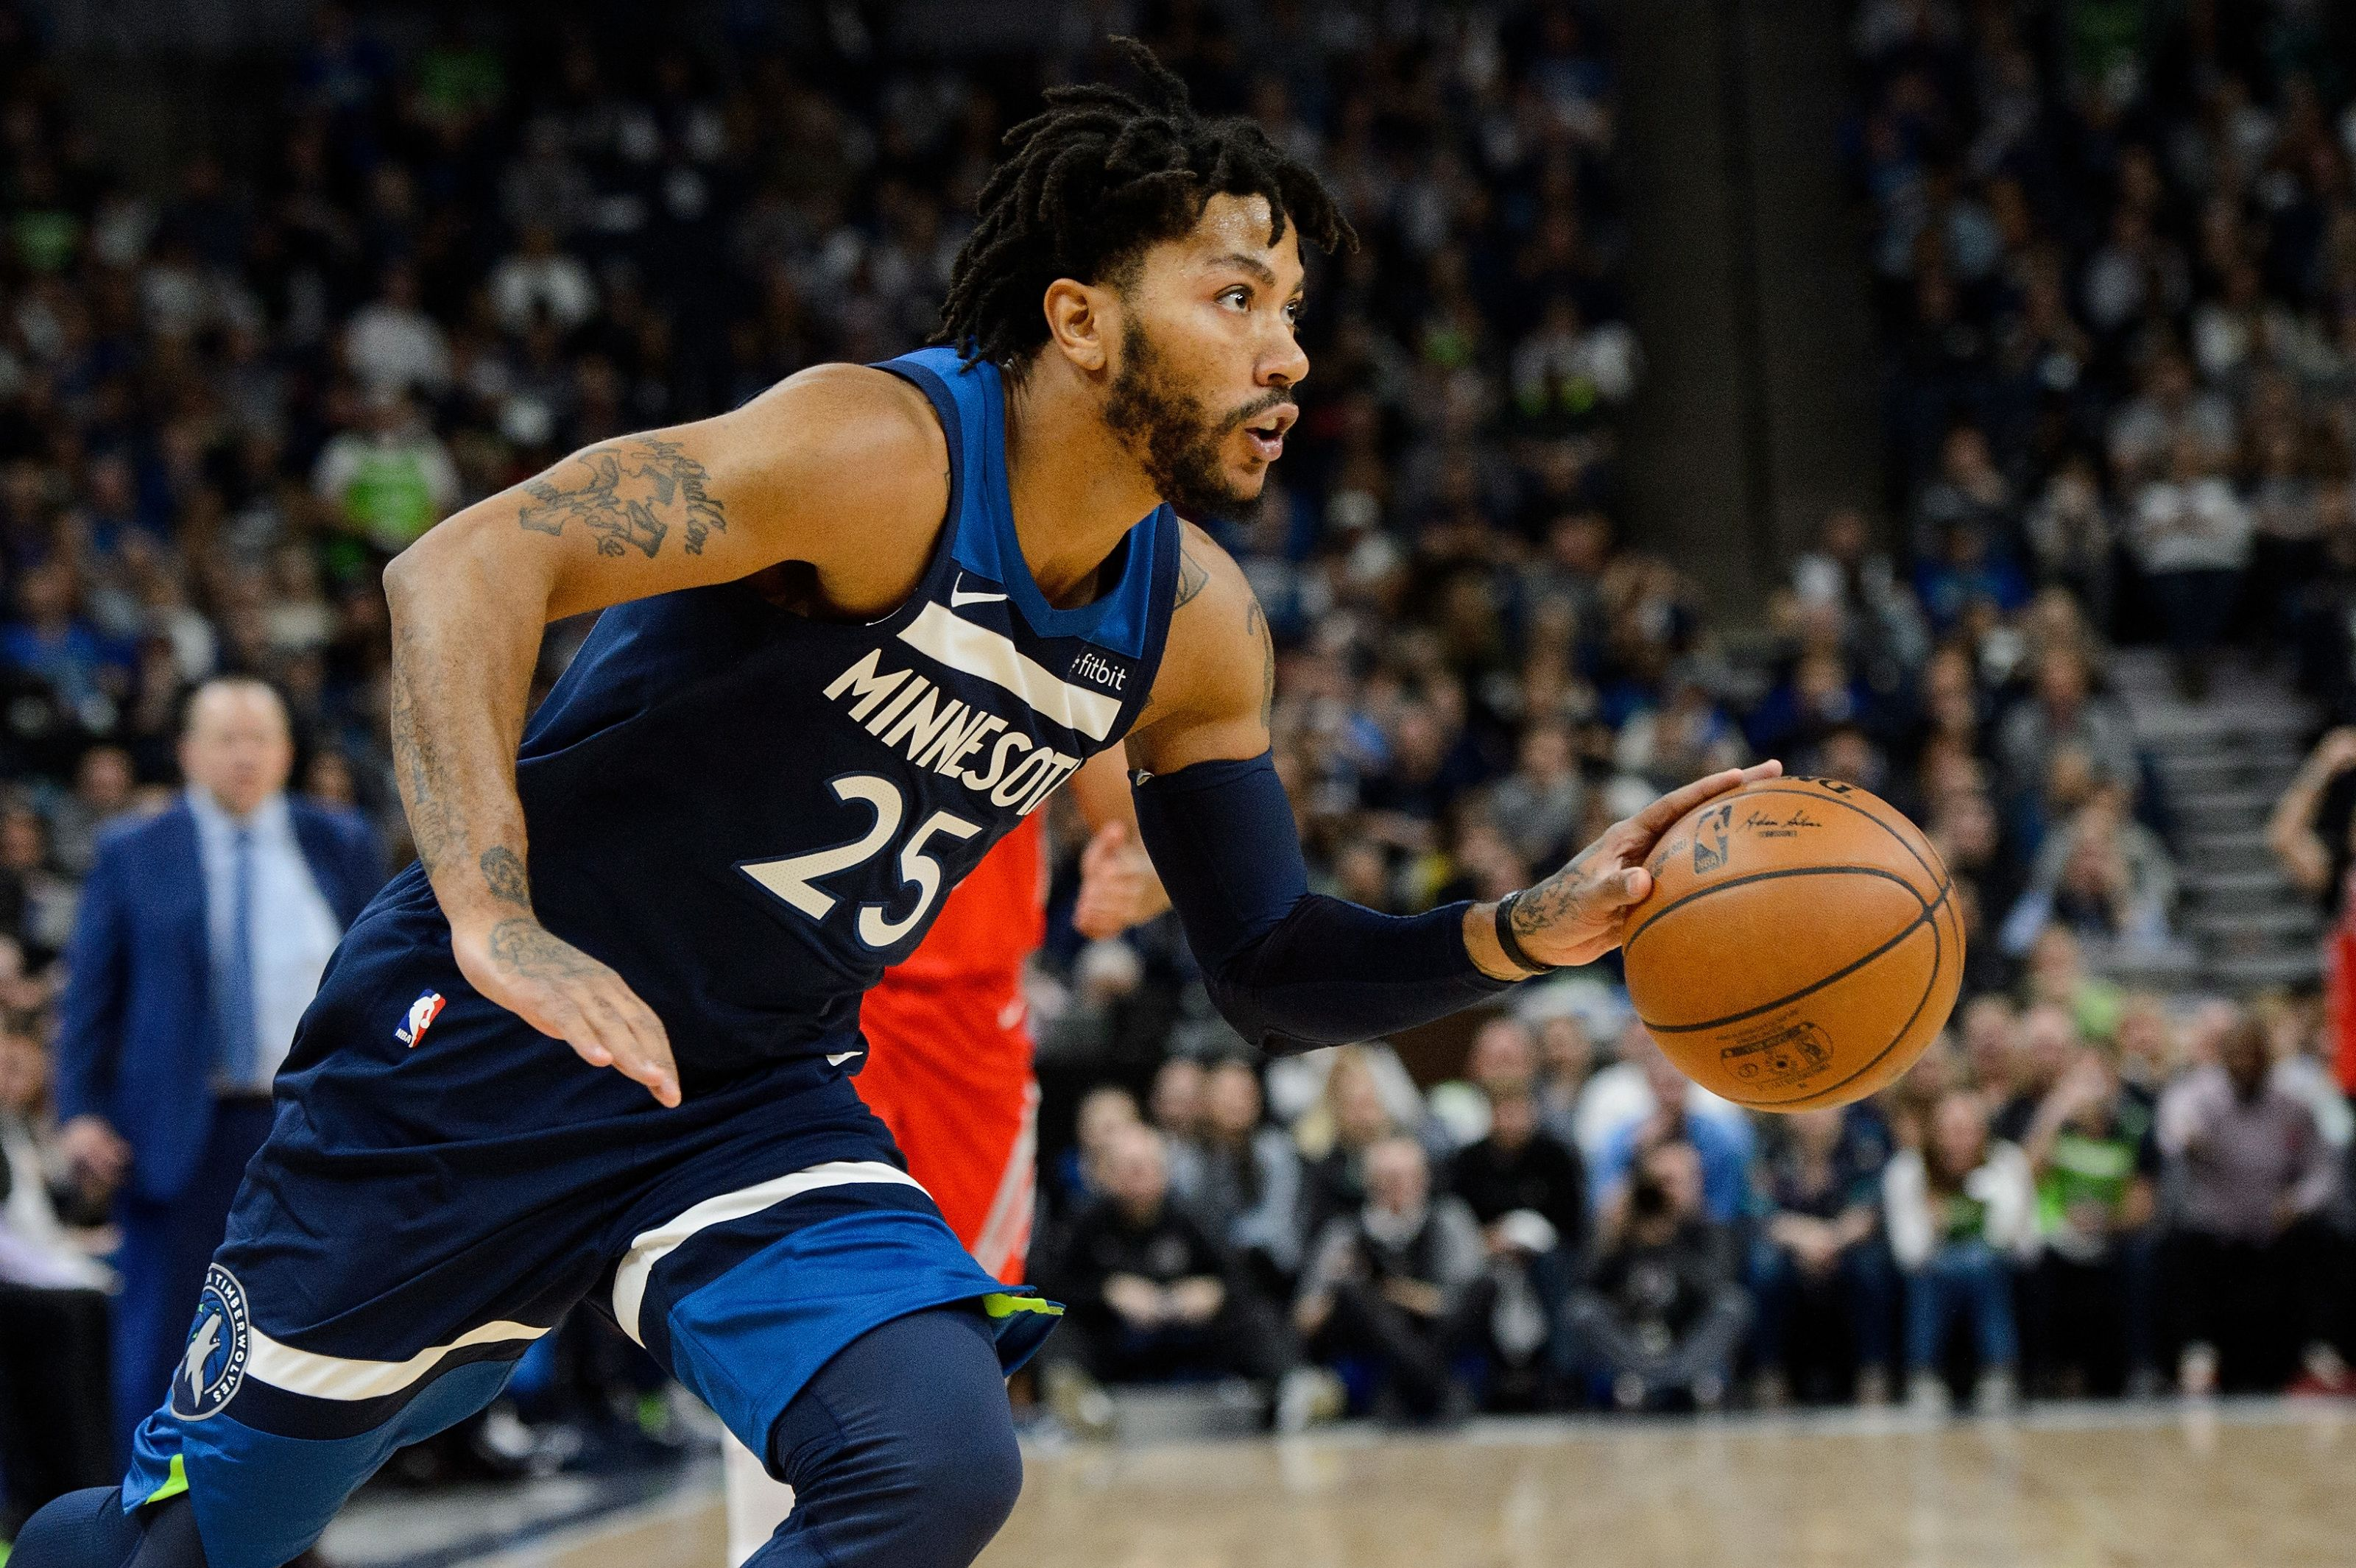 Minnesota Timberwolves: Derrick Rose could be the Most Improved Player